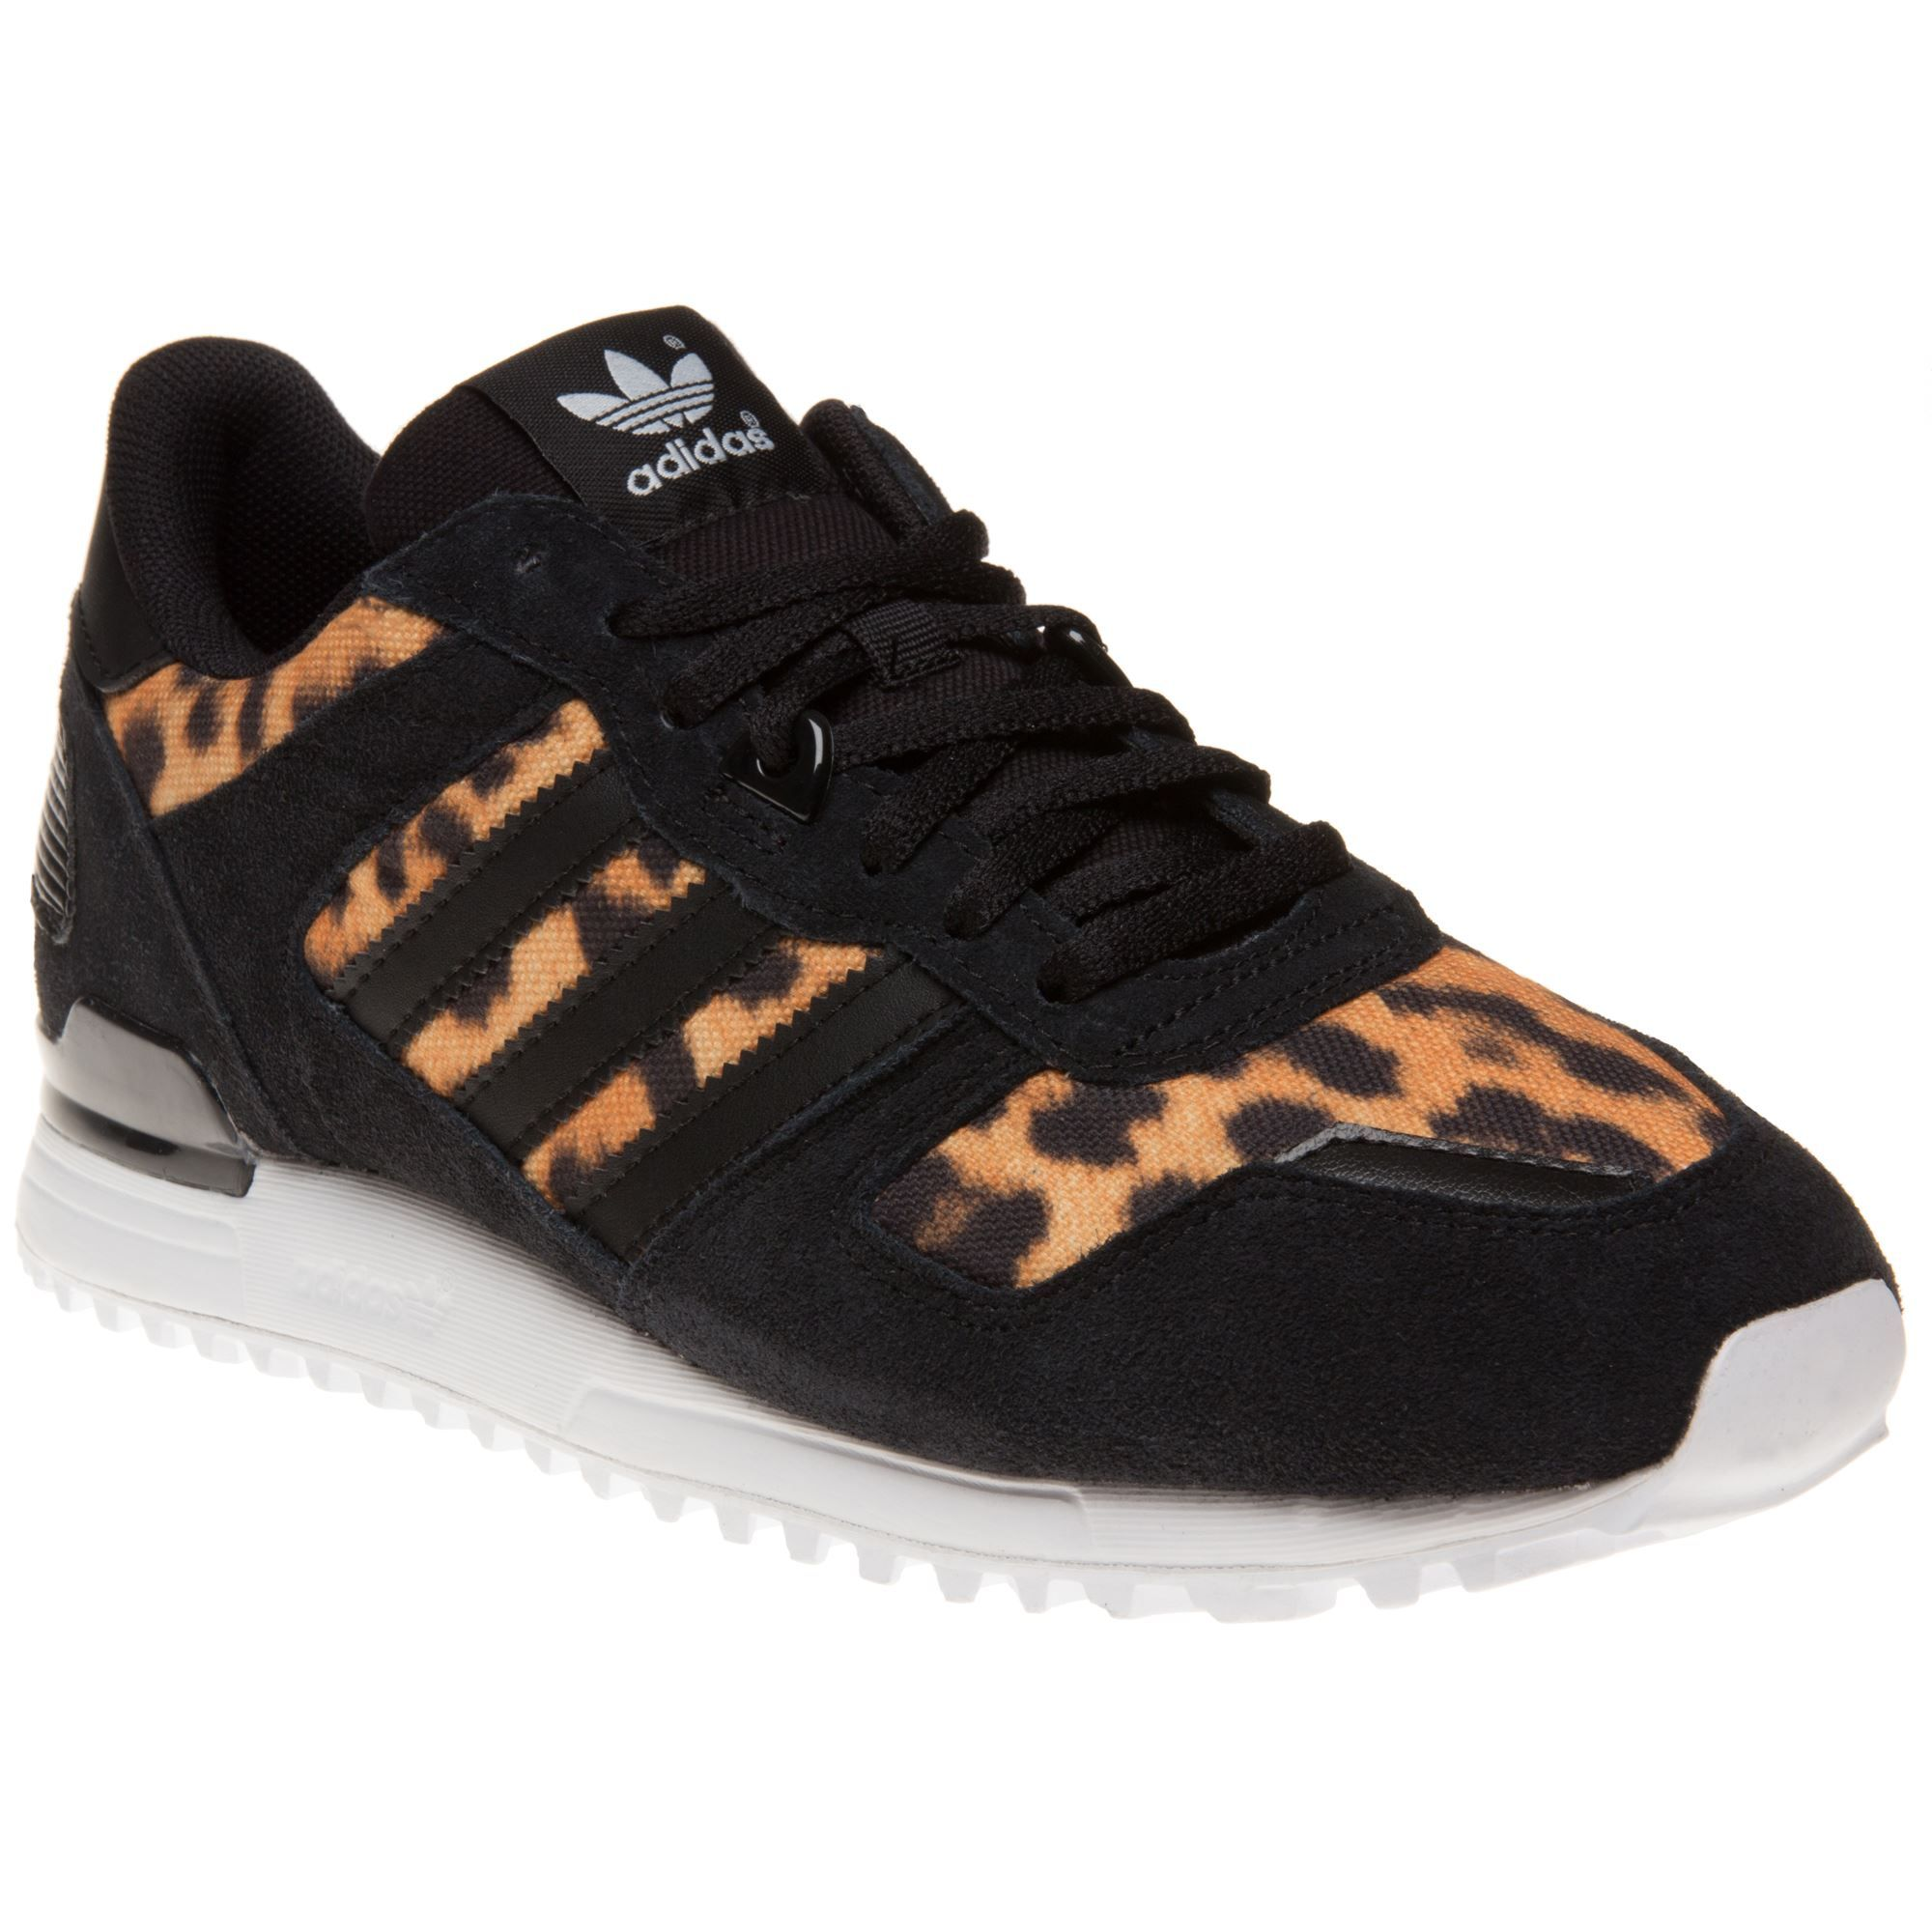 separation shoes fd61d 15735 ... closeout go wild for the adidas zx 700 trainers in leopard print. 7d1d8  28370